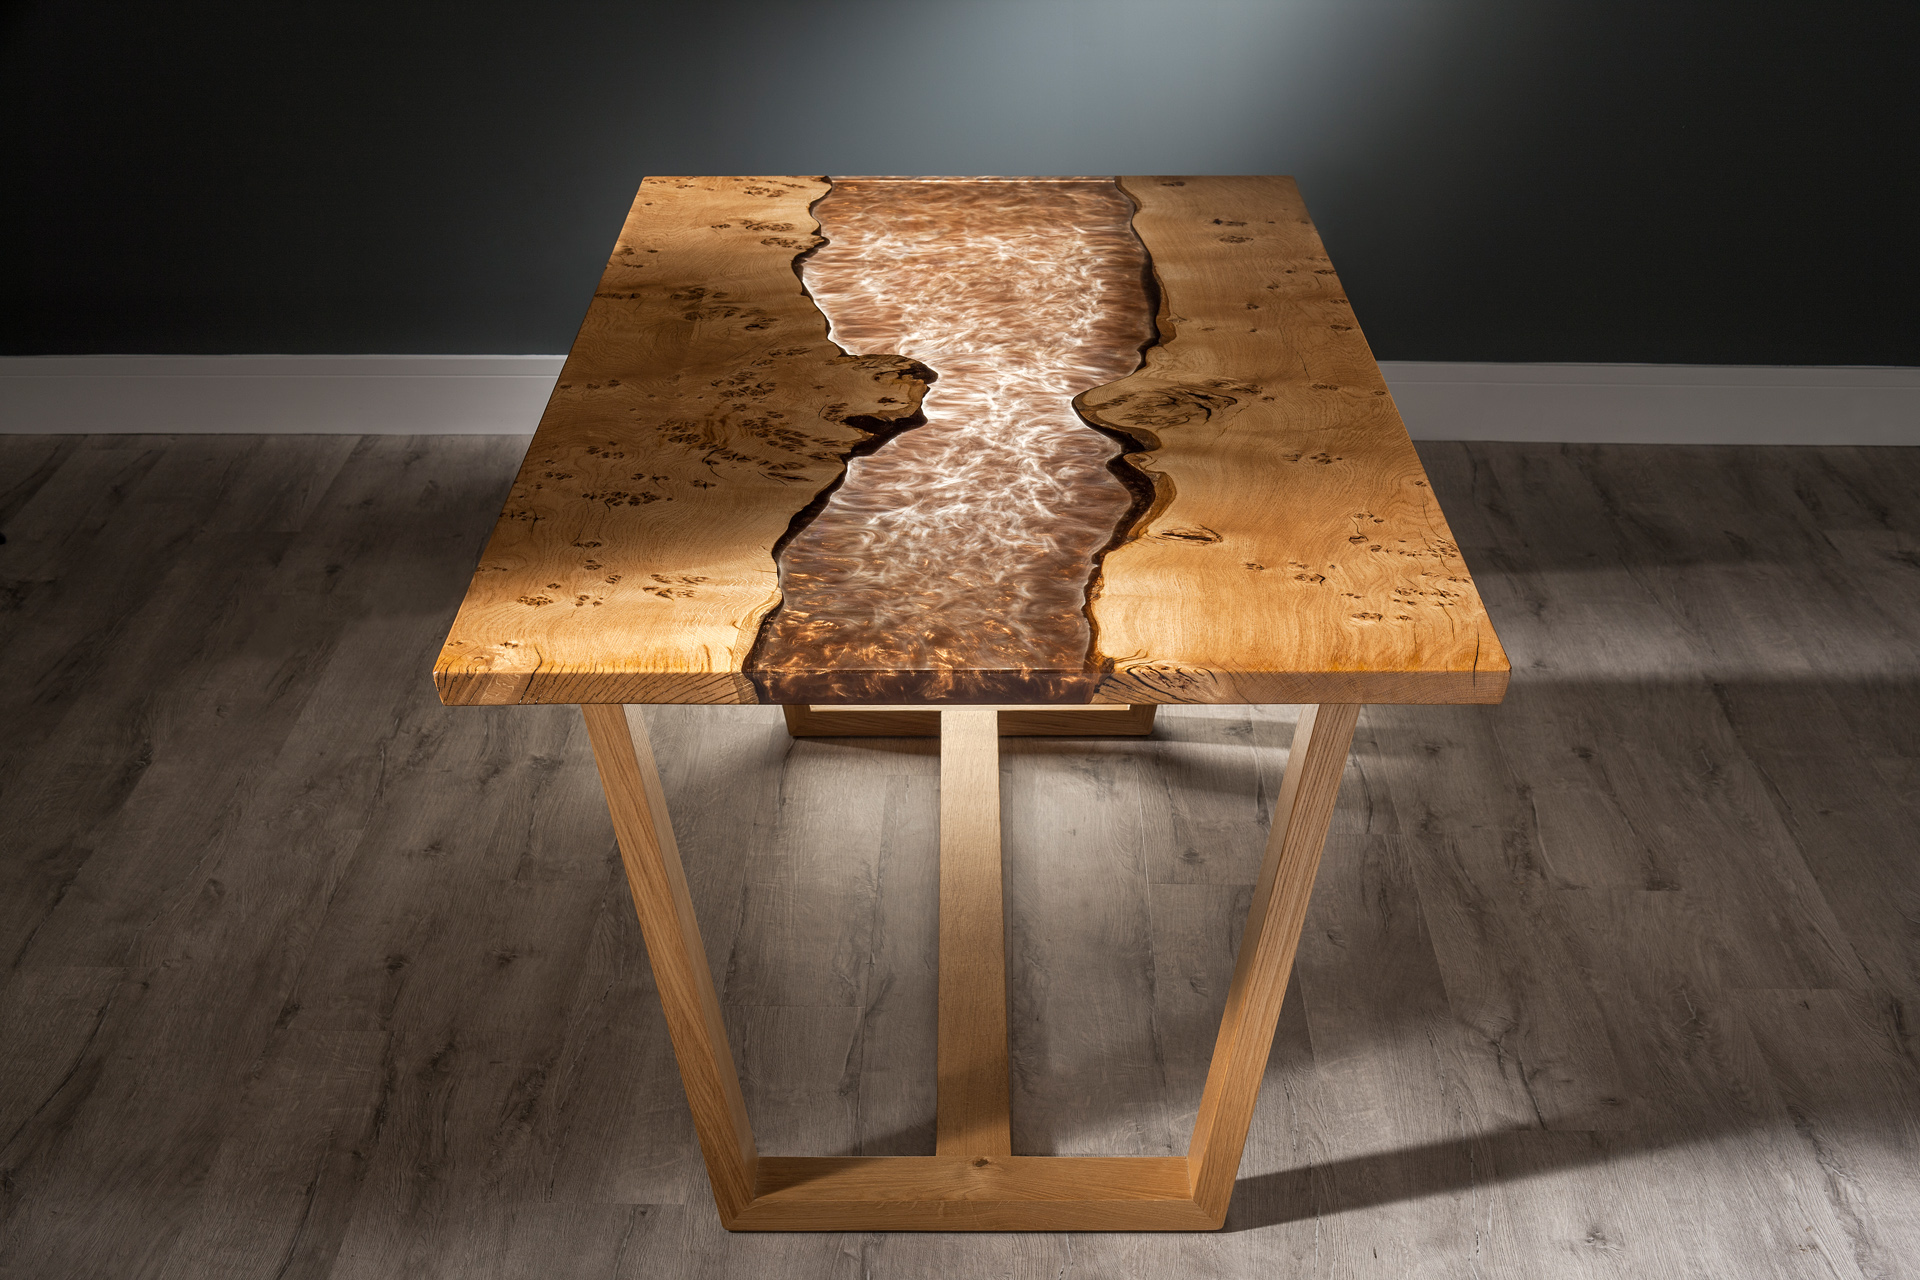 west coast river table